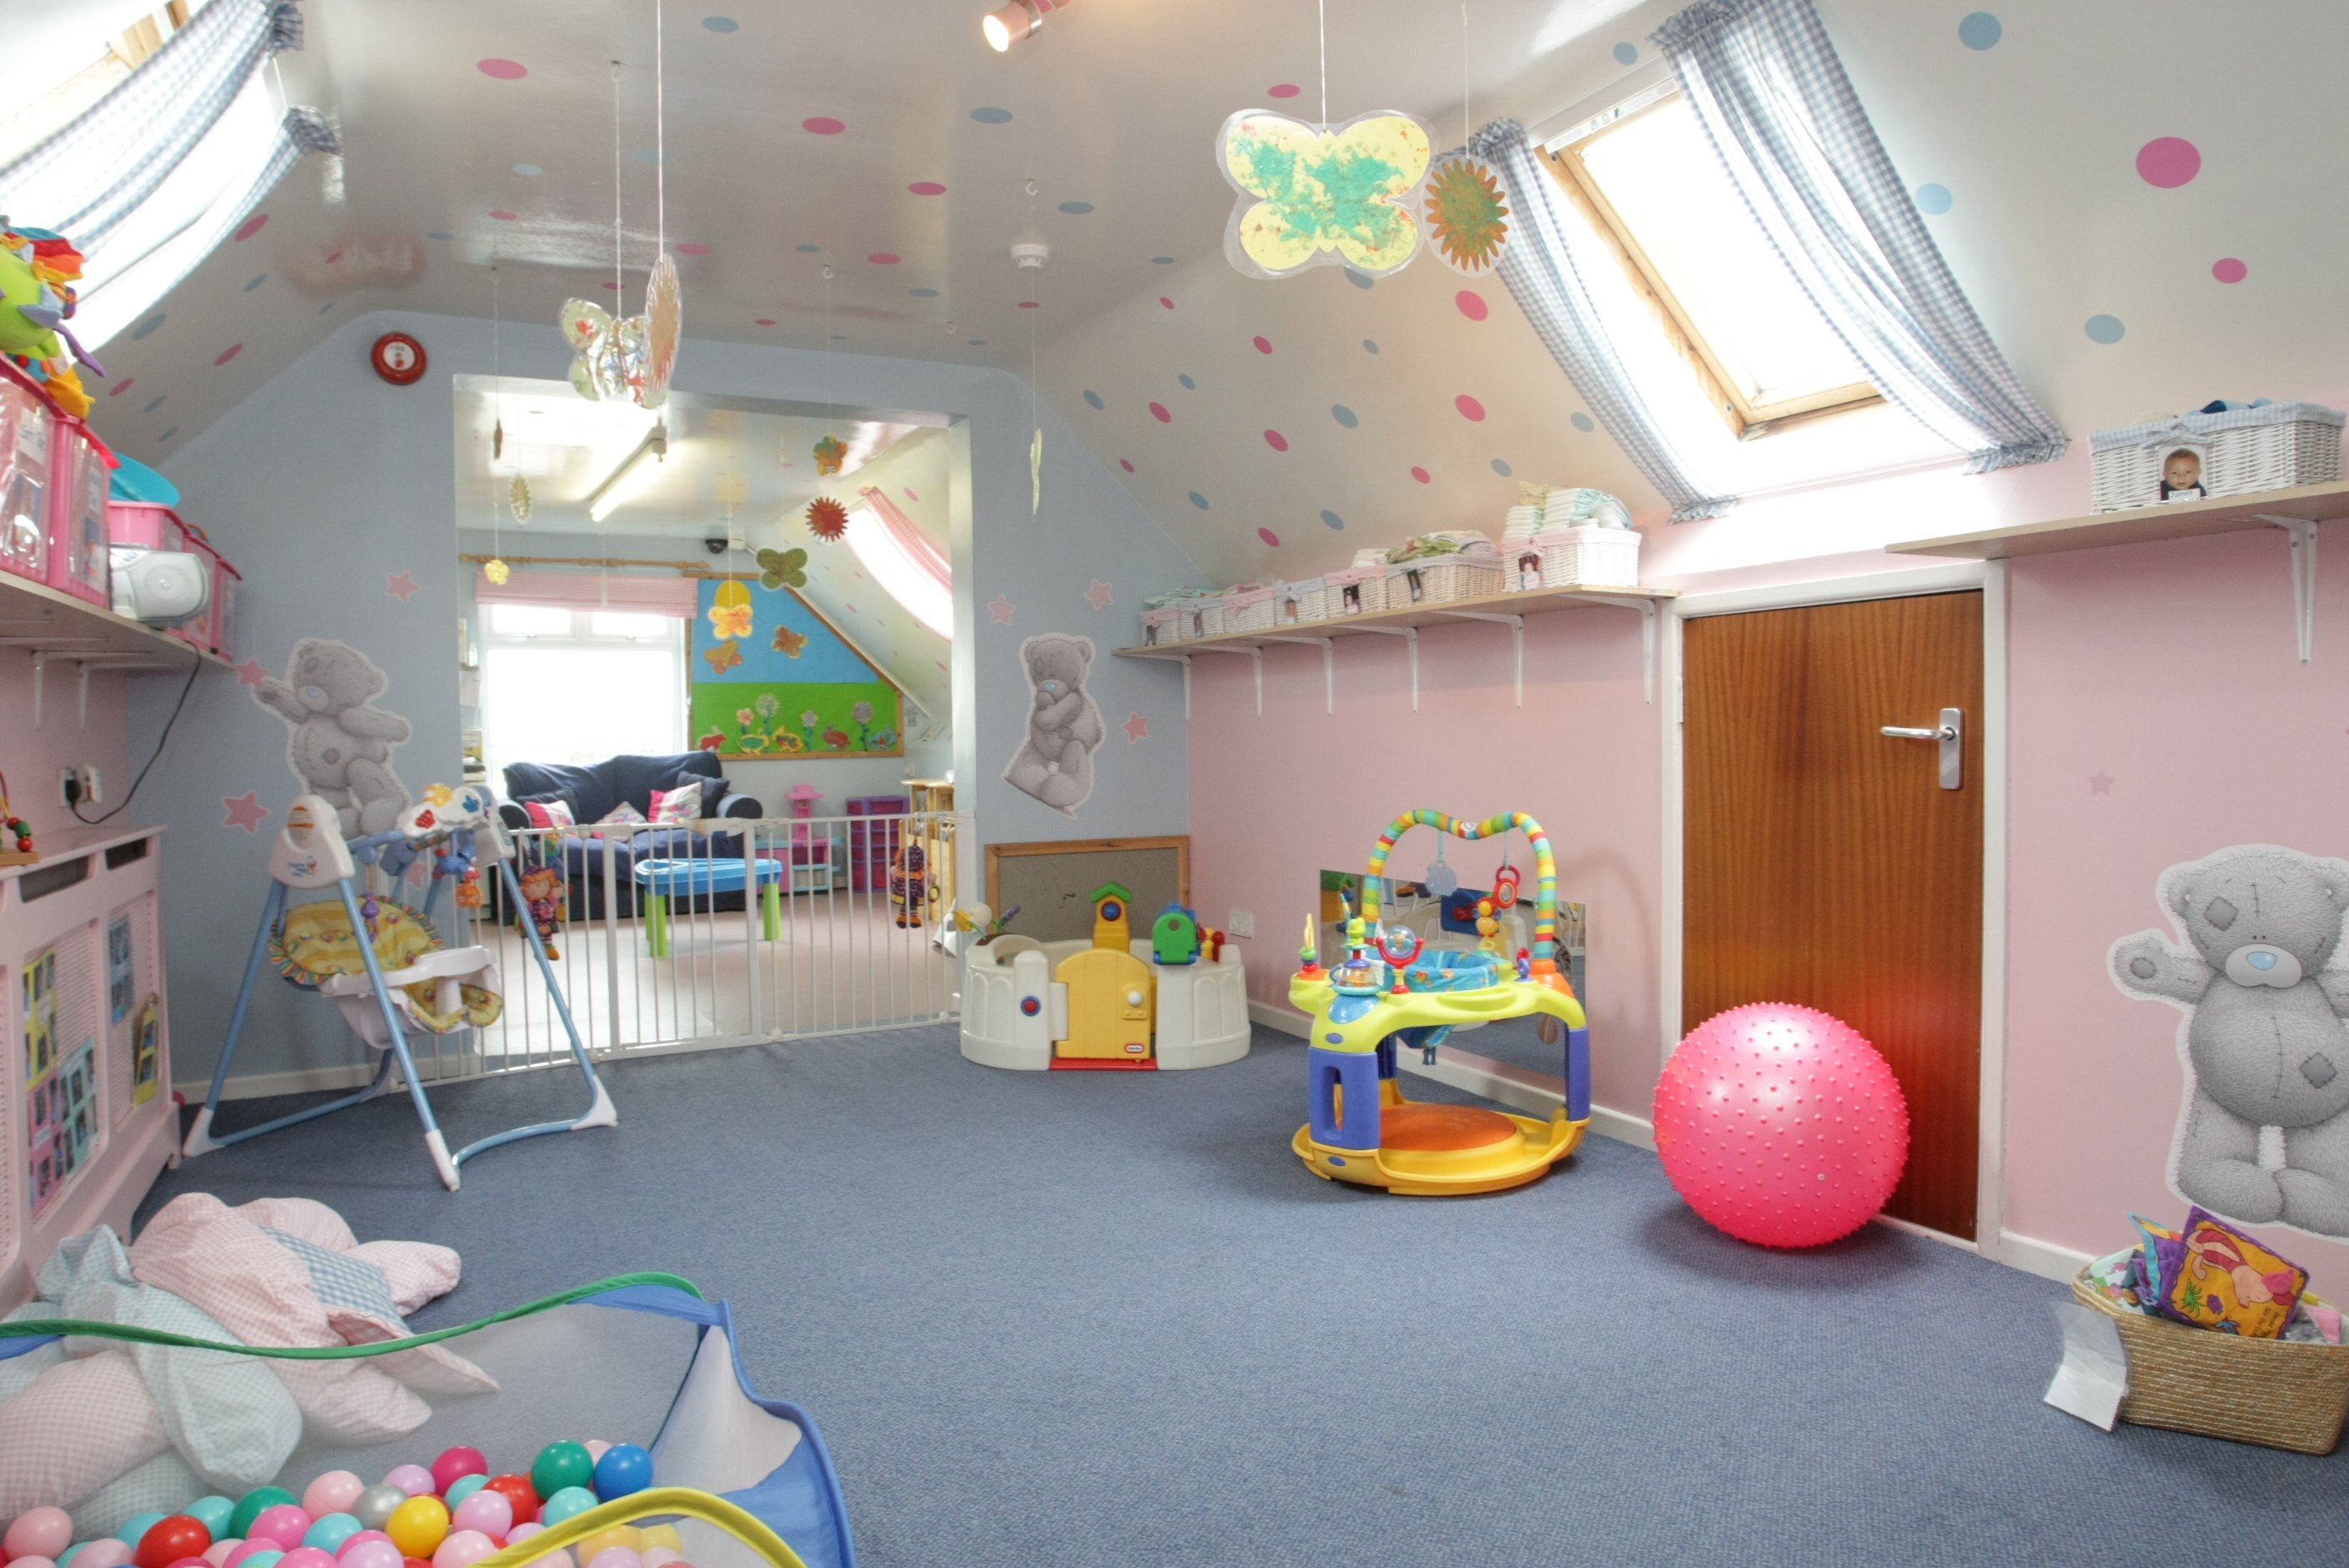 Nursery care and day nursery for babies in Bangor